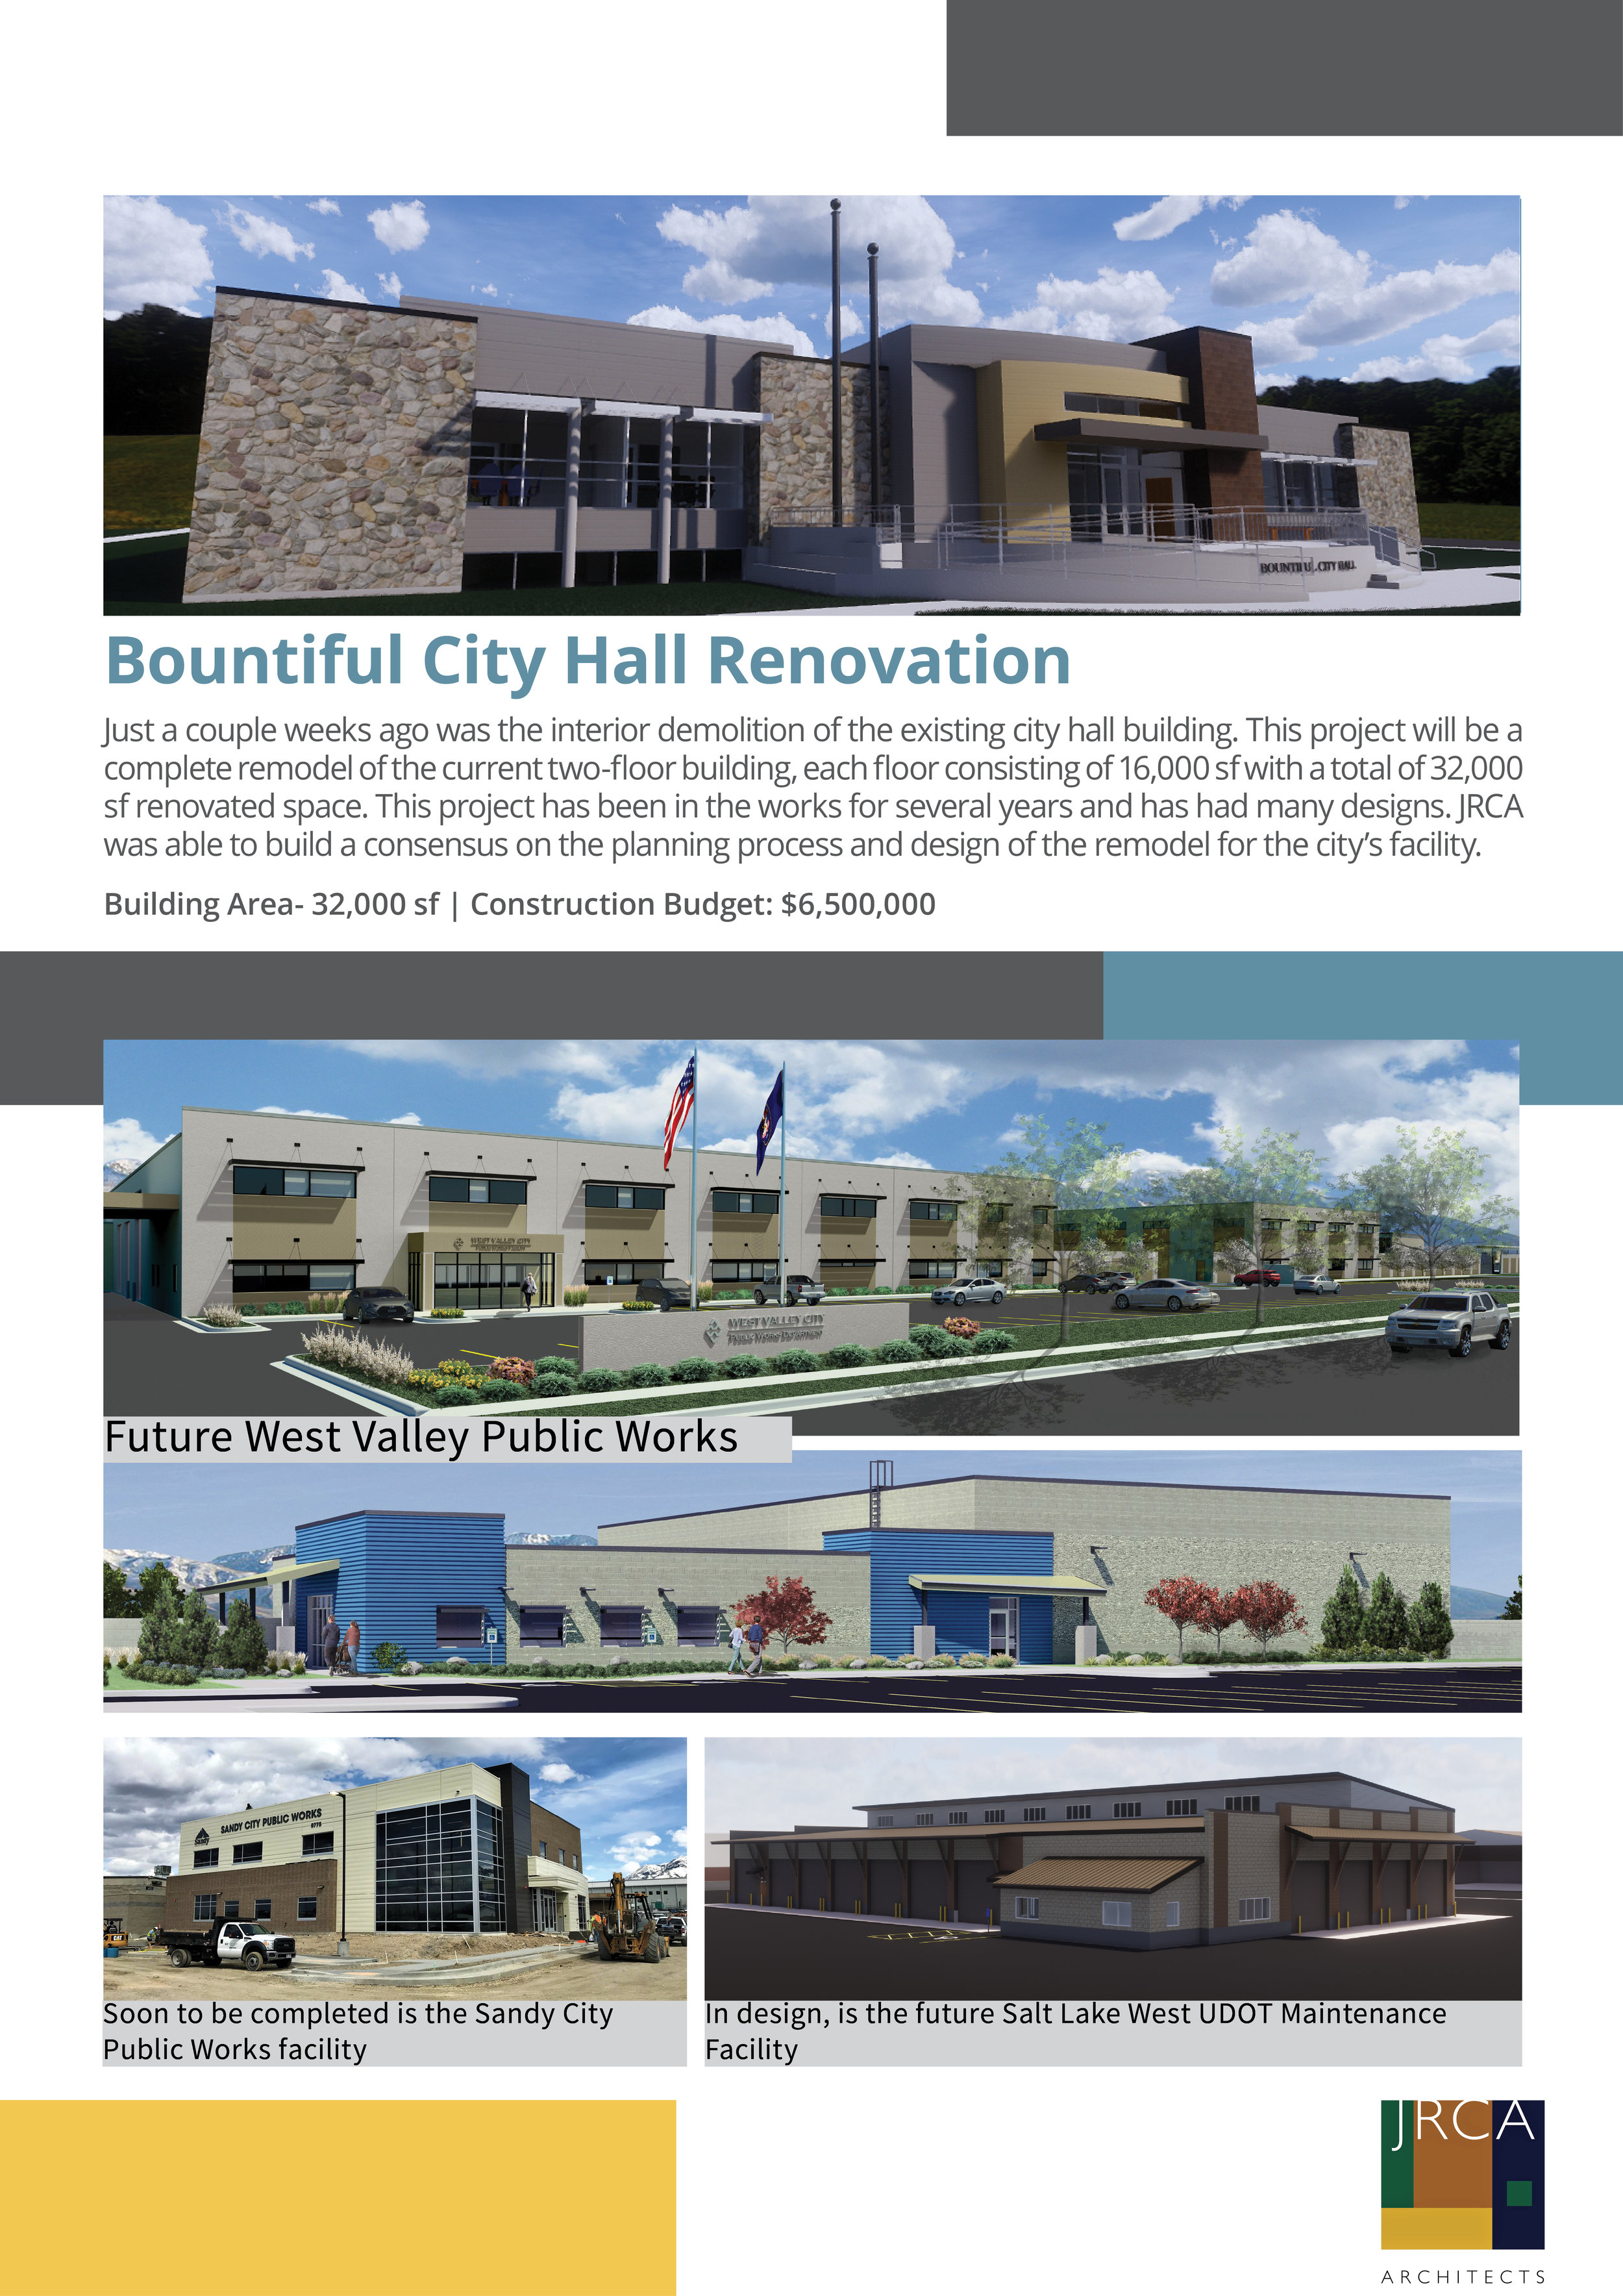 Municipal Facilities Newsletter3.jpg